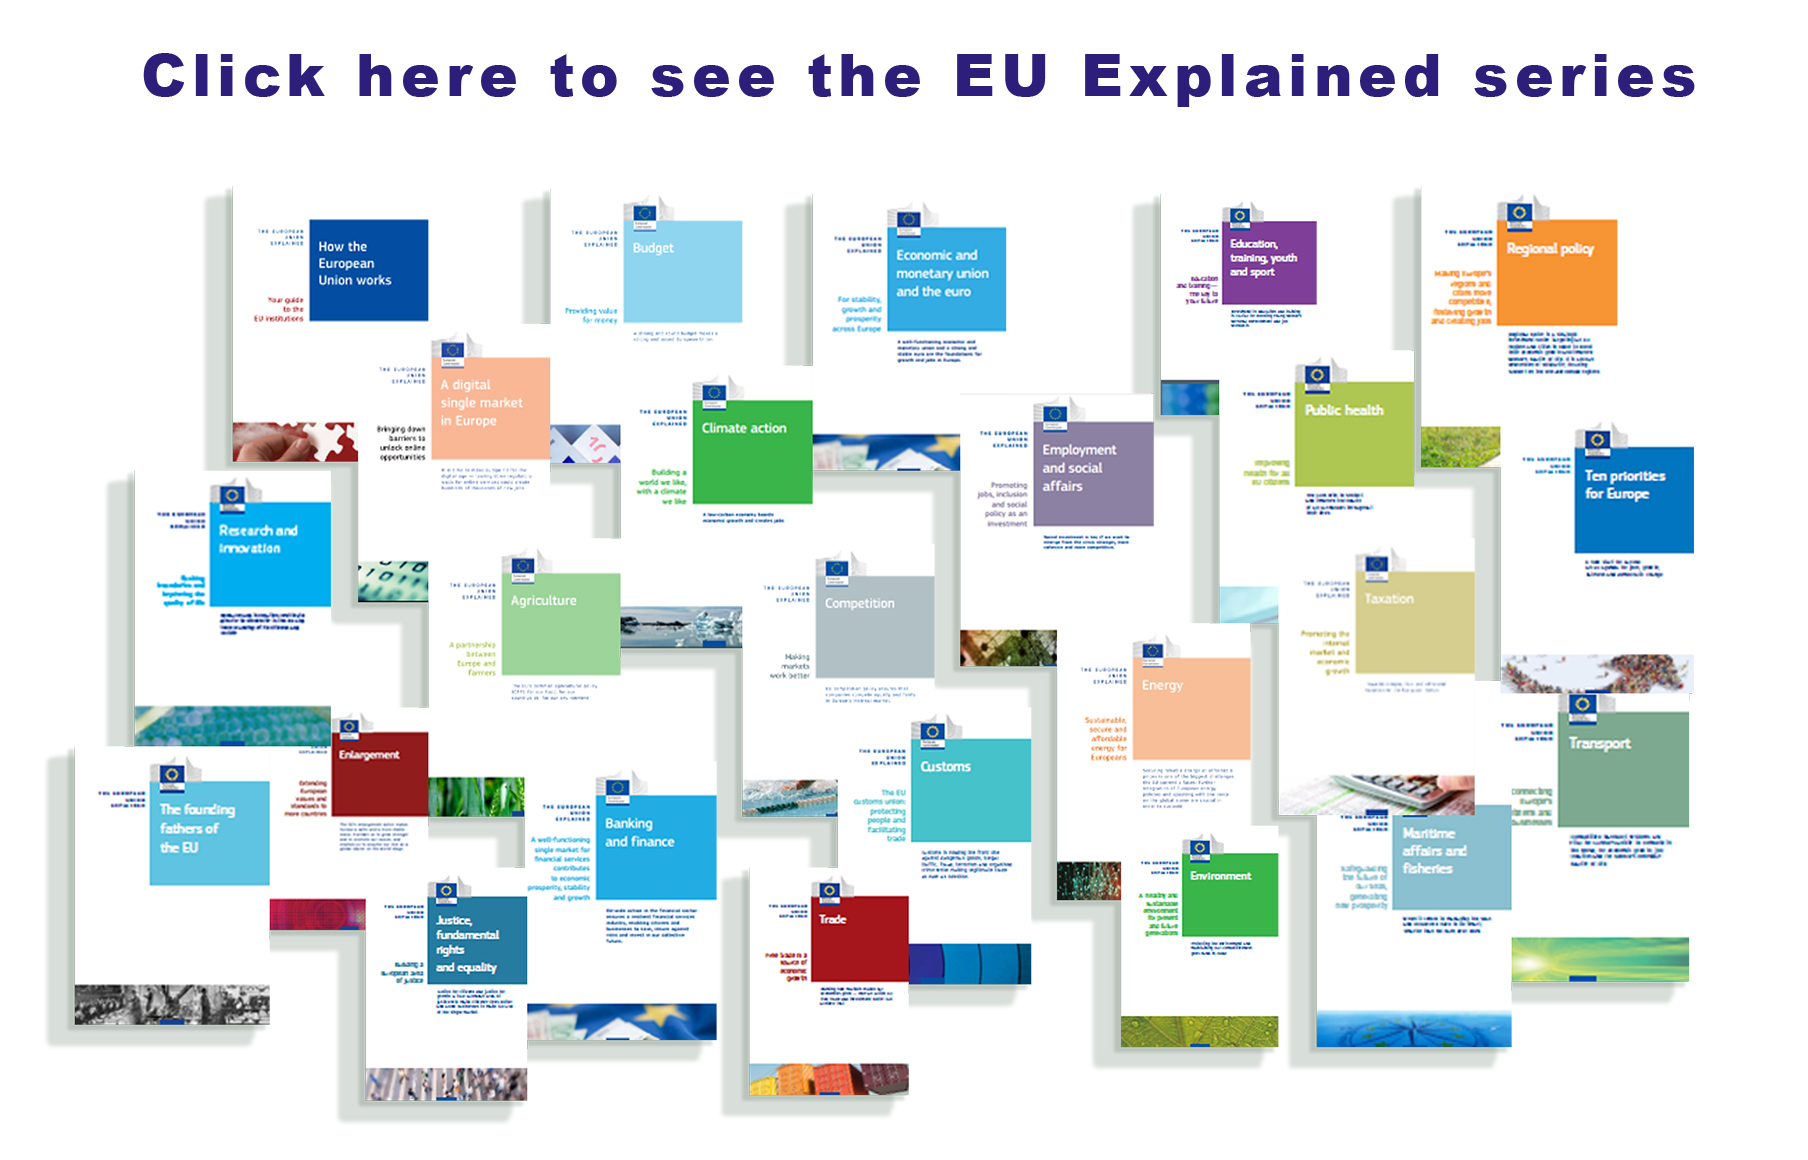 EU explained series link to publications